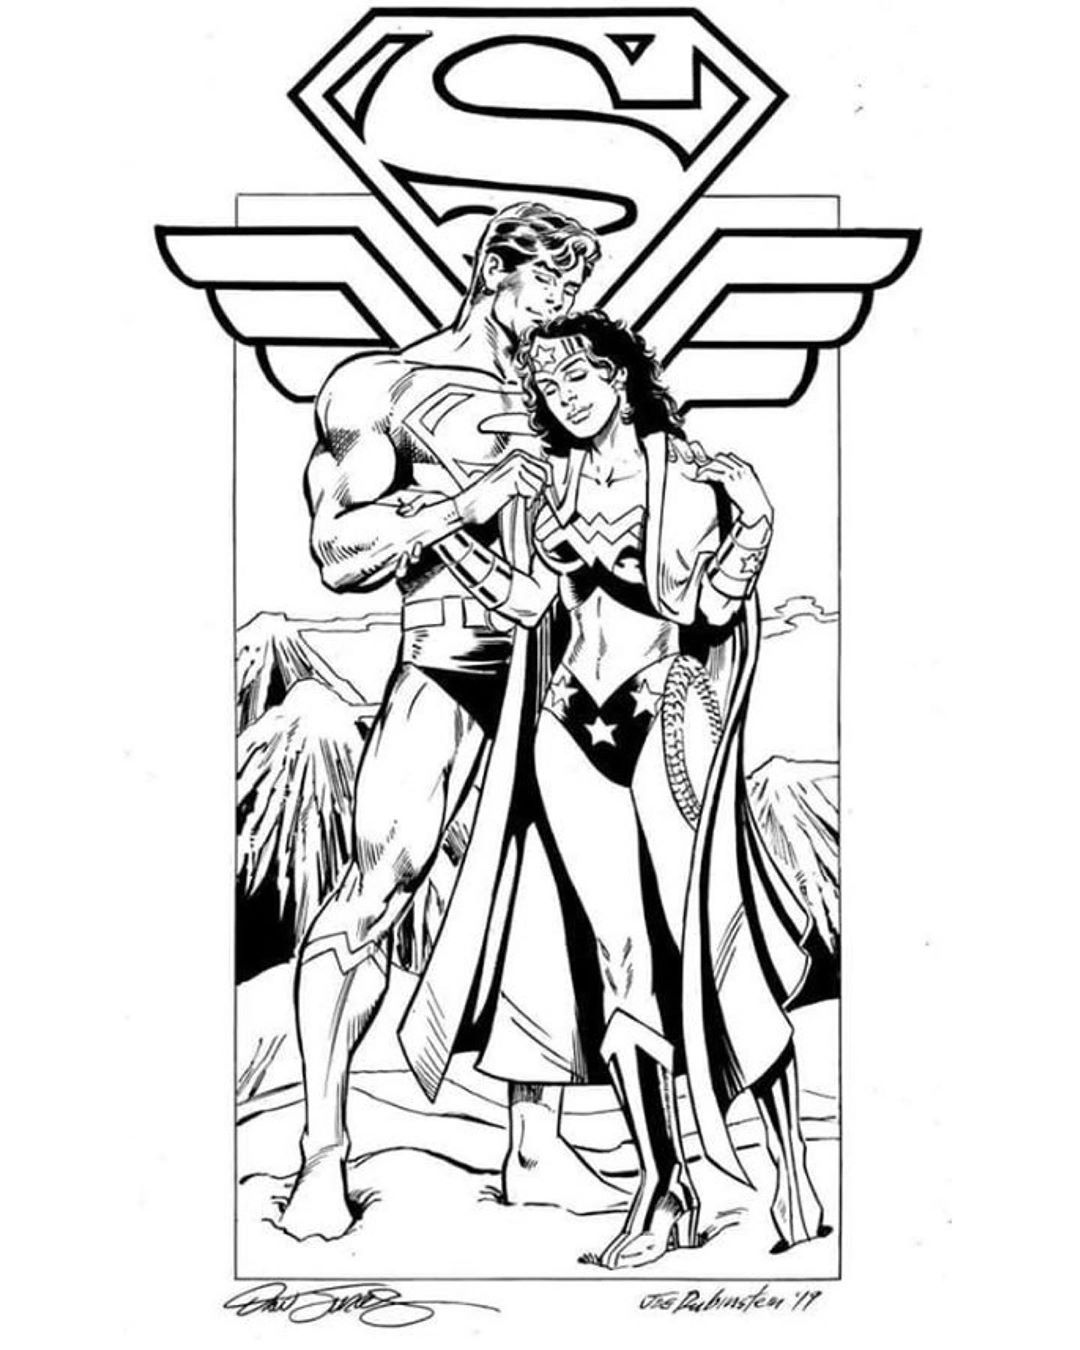 [LMH] By Dan Jurgens and Josef Rubinstein (With images